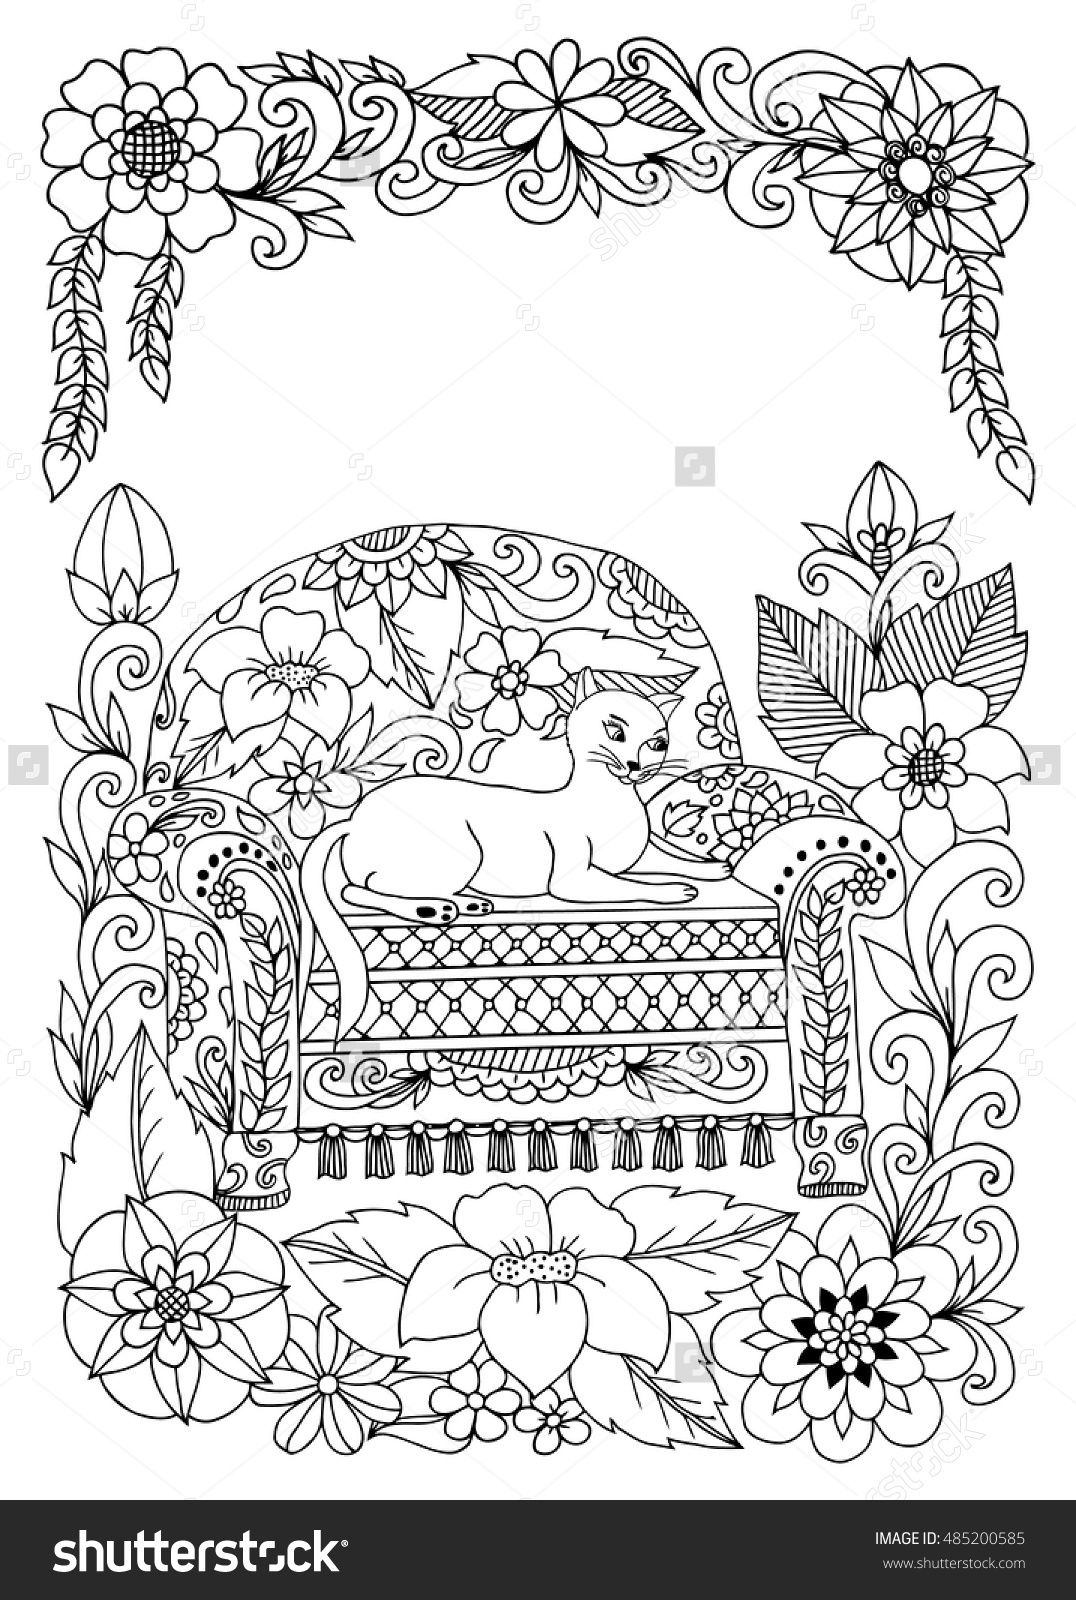 Zentangle Cat On A Saturday Sofa In The Colors Doodle Coloring Book For Adults